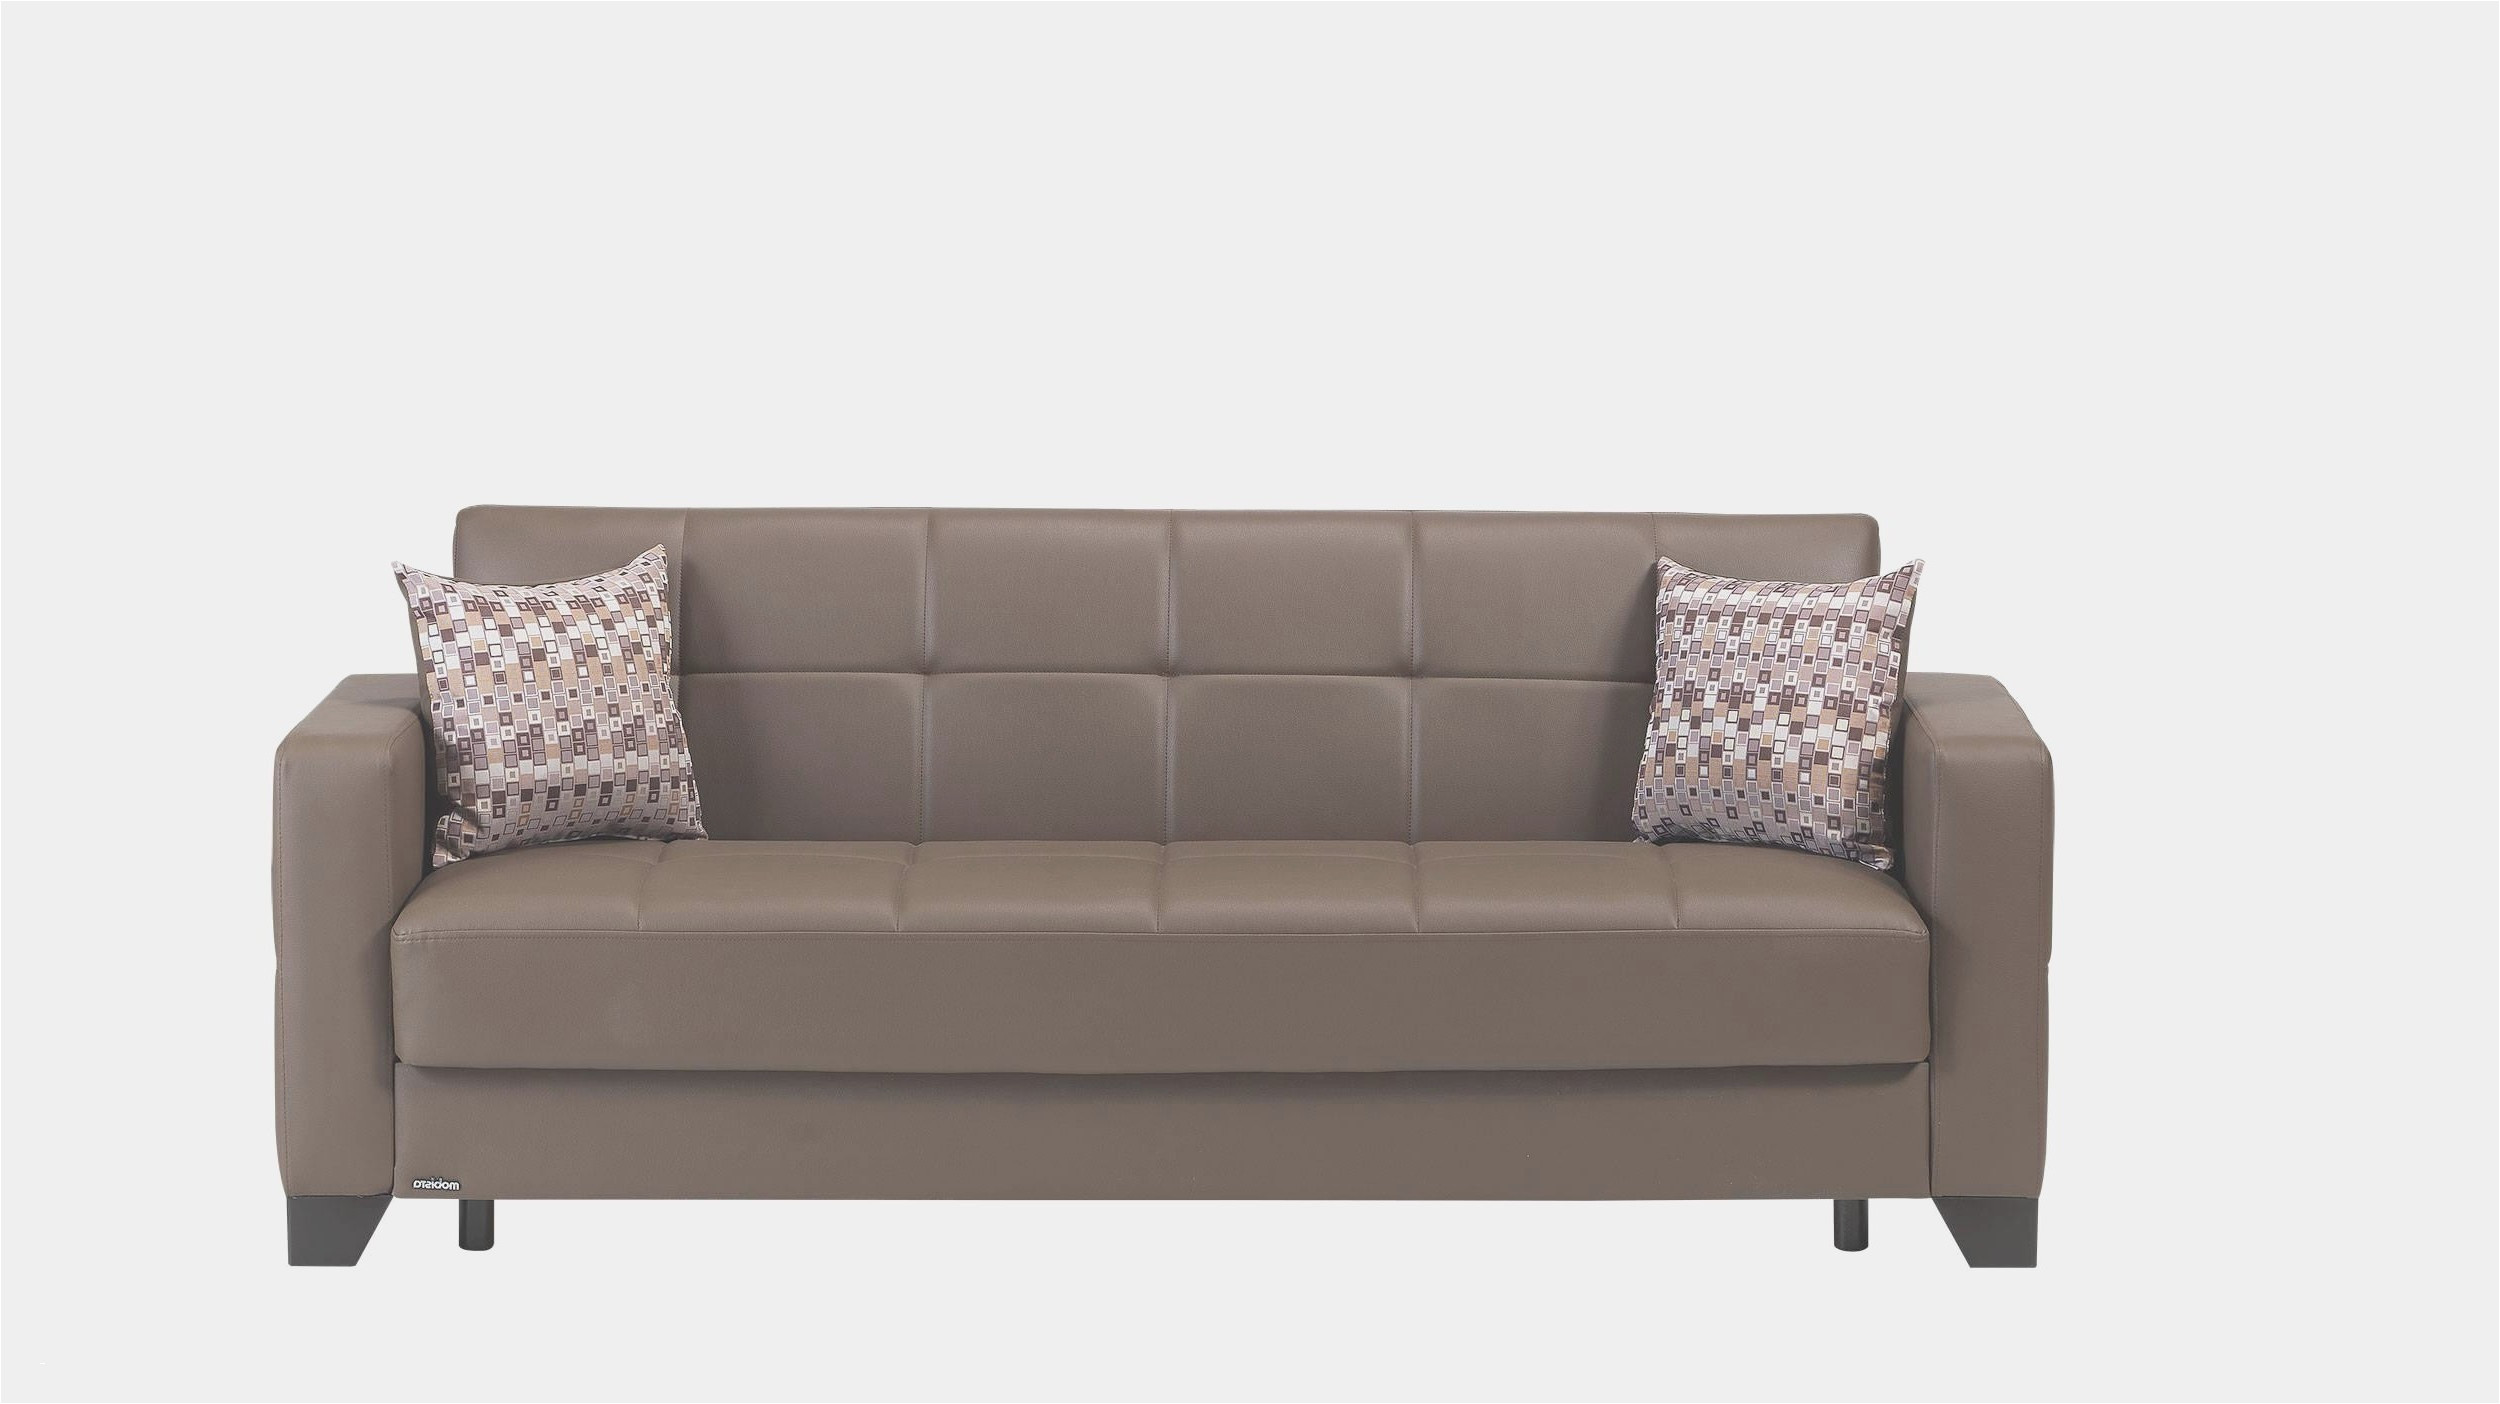 Friheten Sessel 2 Personen Chaiselongue Lounge Sessel Beige Leder